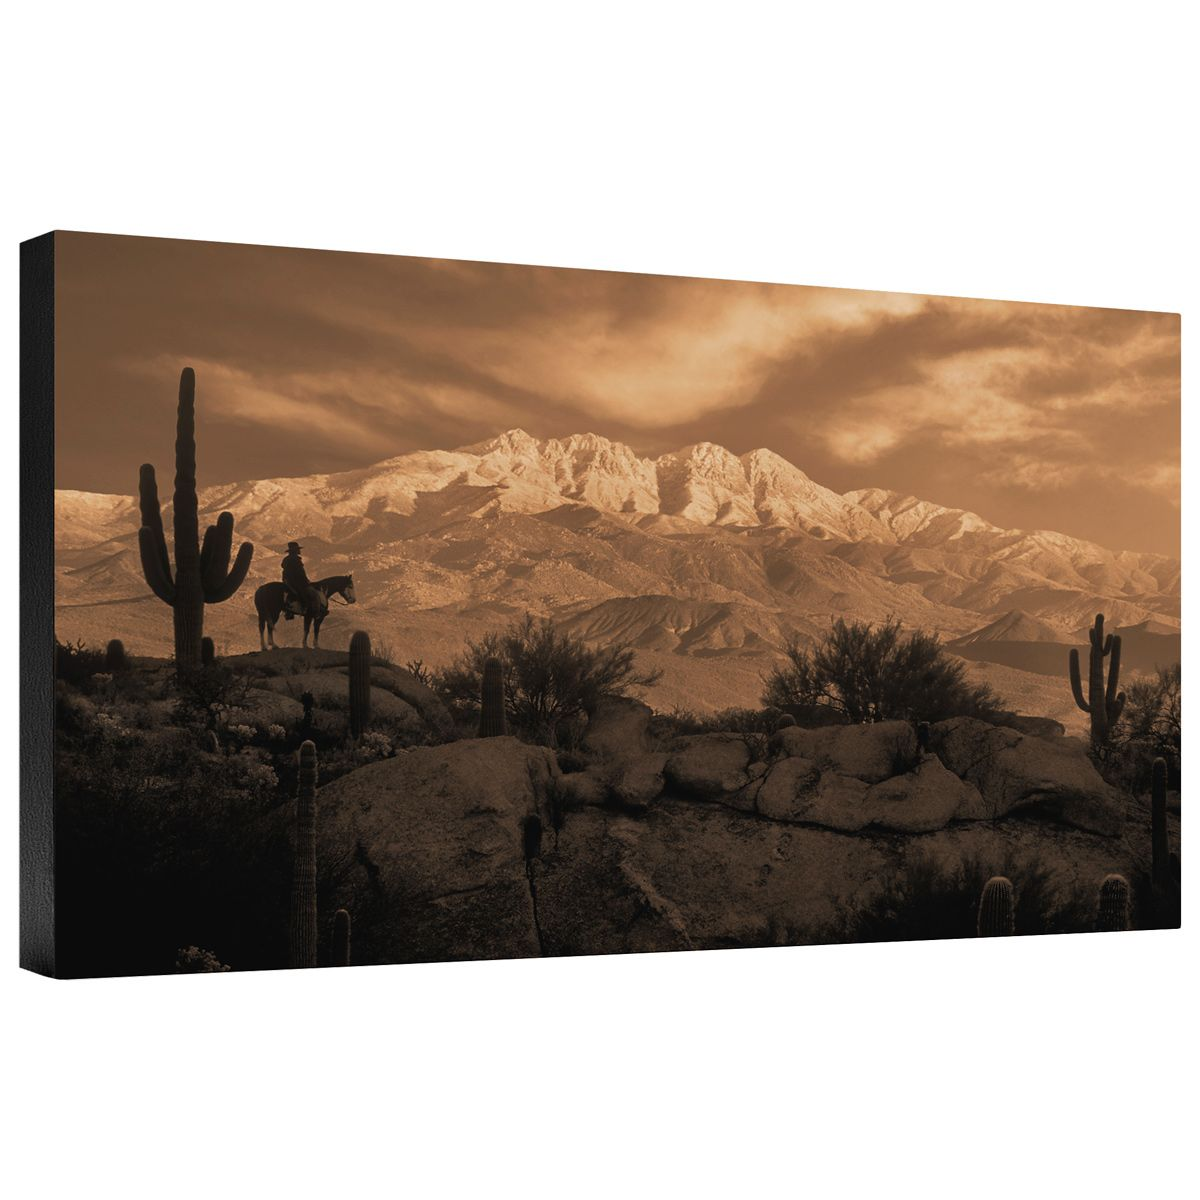 4 Peaks Gallery Wrapped Canvas